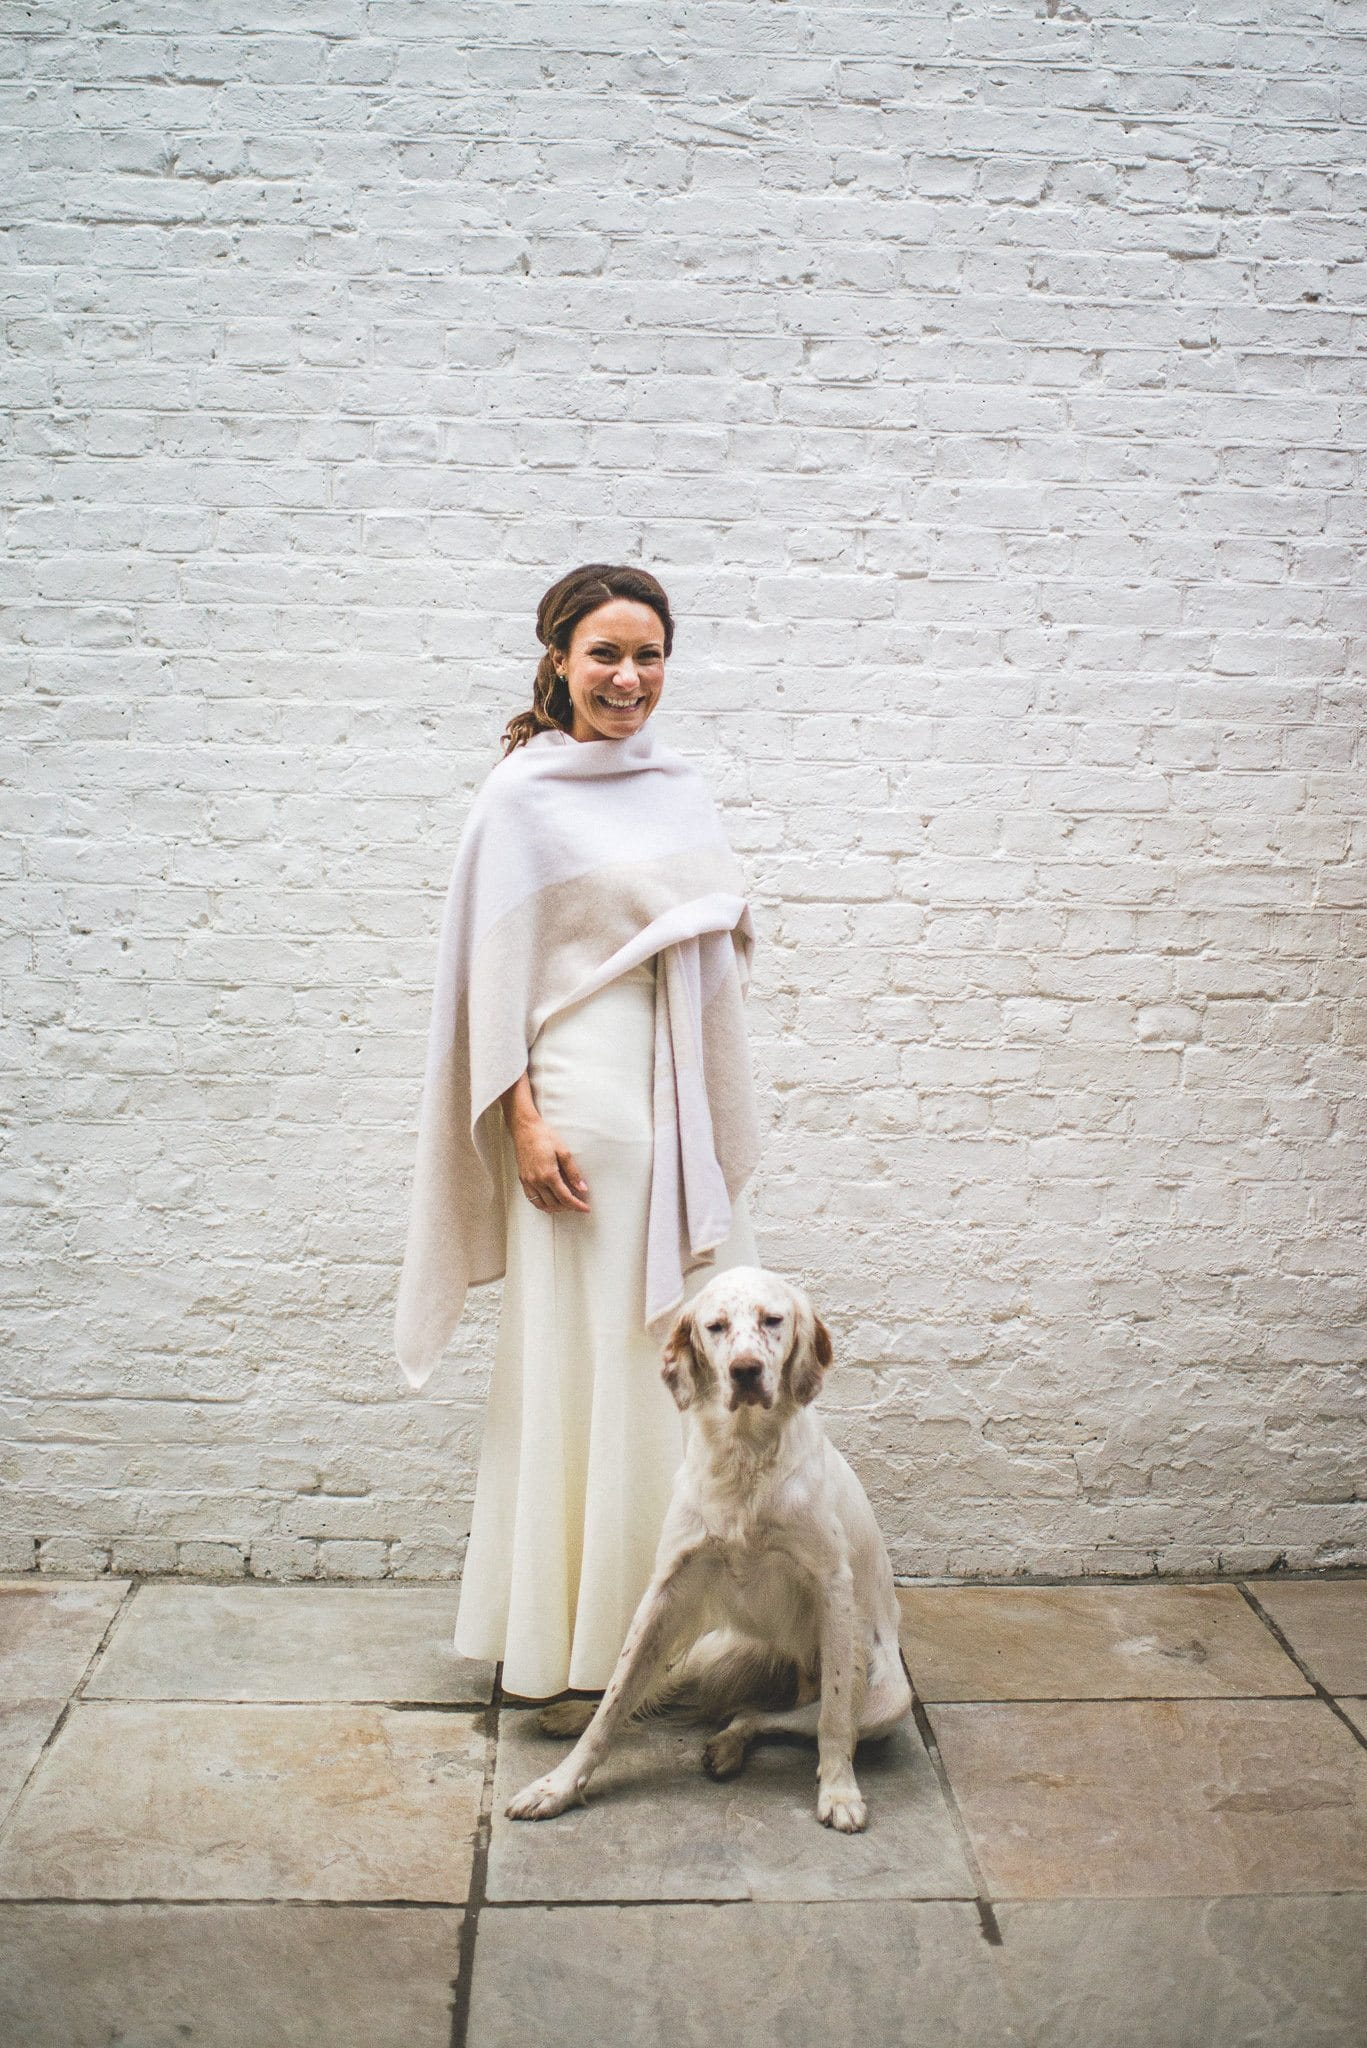 Ilaria poses with her dog. She is wrapped up against the cold in a cashmere shawl.